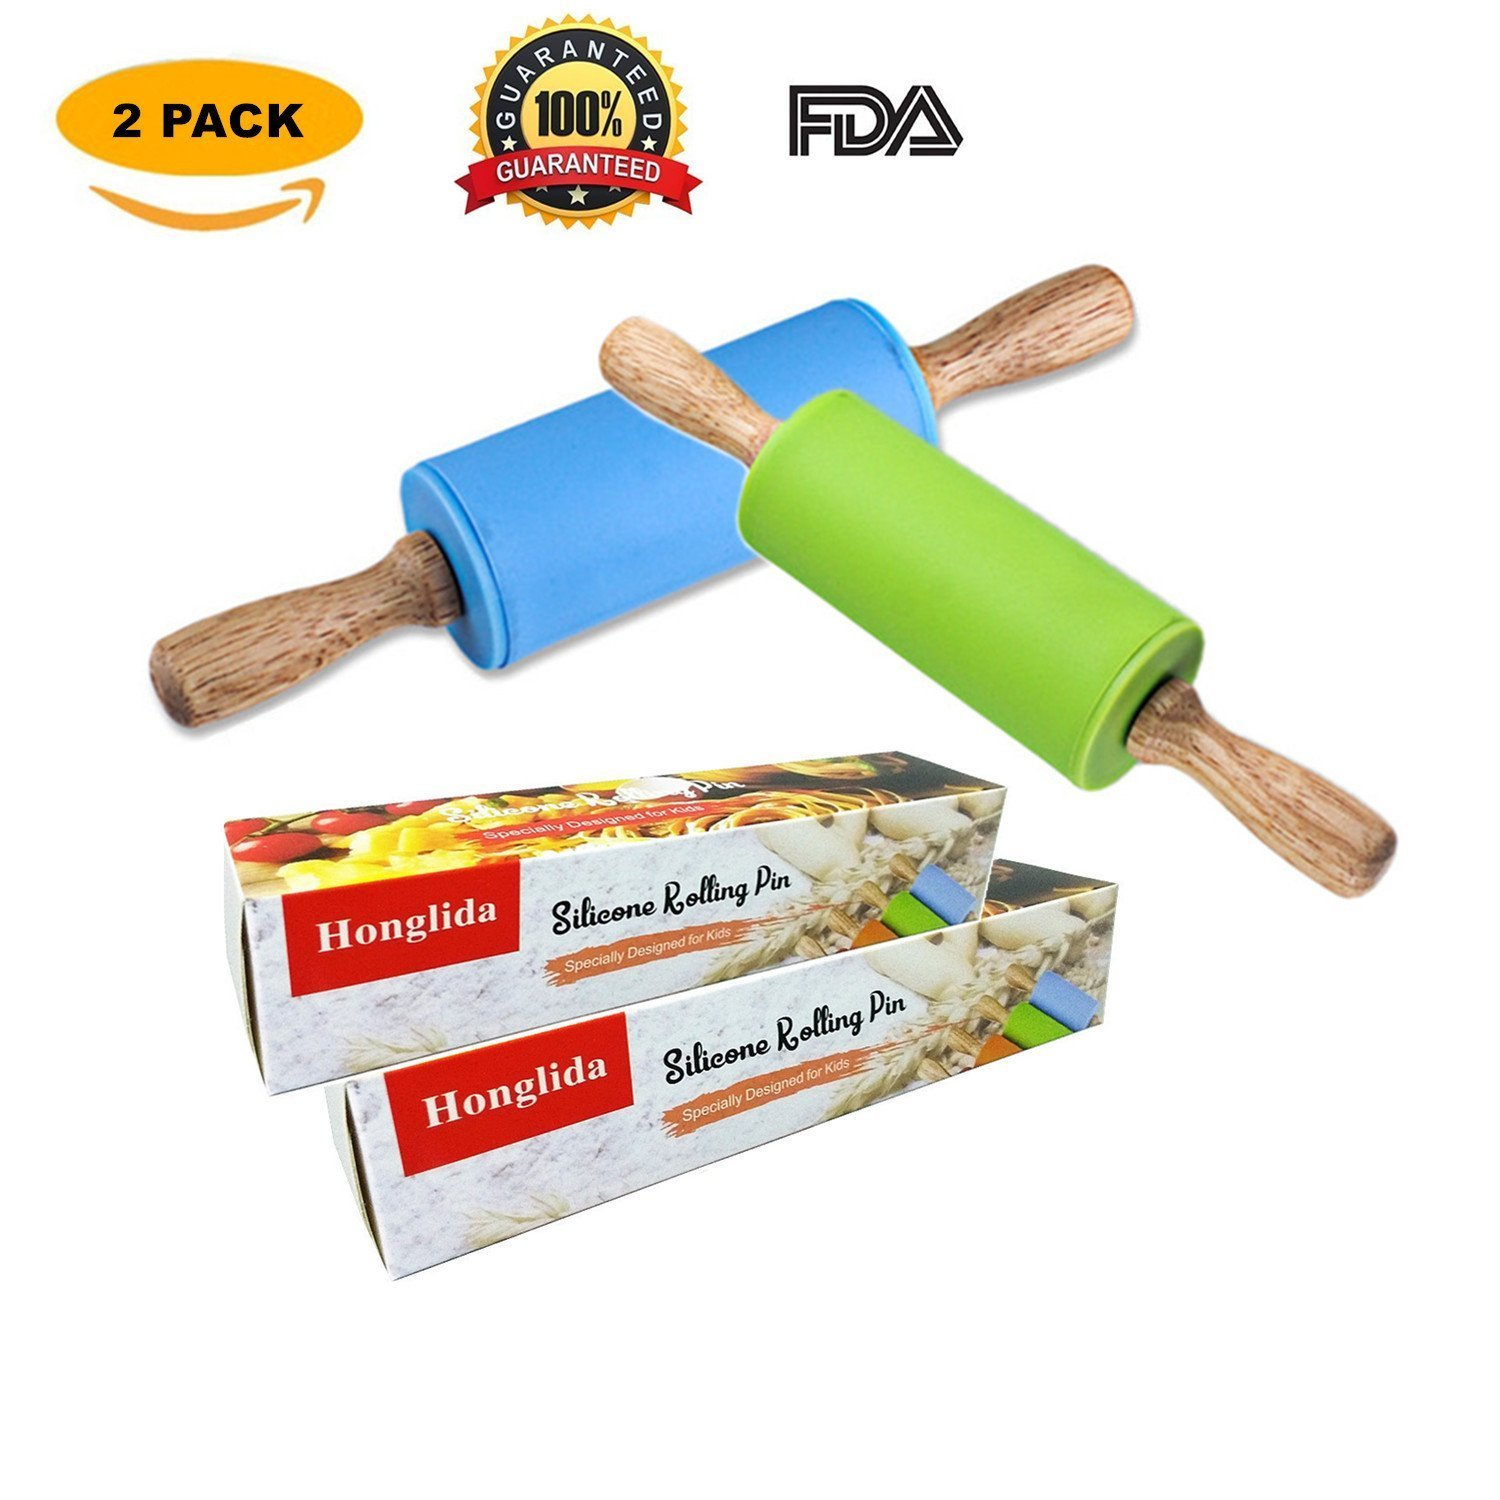 Honglida 9 Inch Silicone Rolling Pin for Kids, Non-stick Surface and Comfortable Wood Handles(Pack of 2) by HONGLIDA (Image #7)